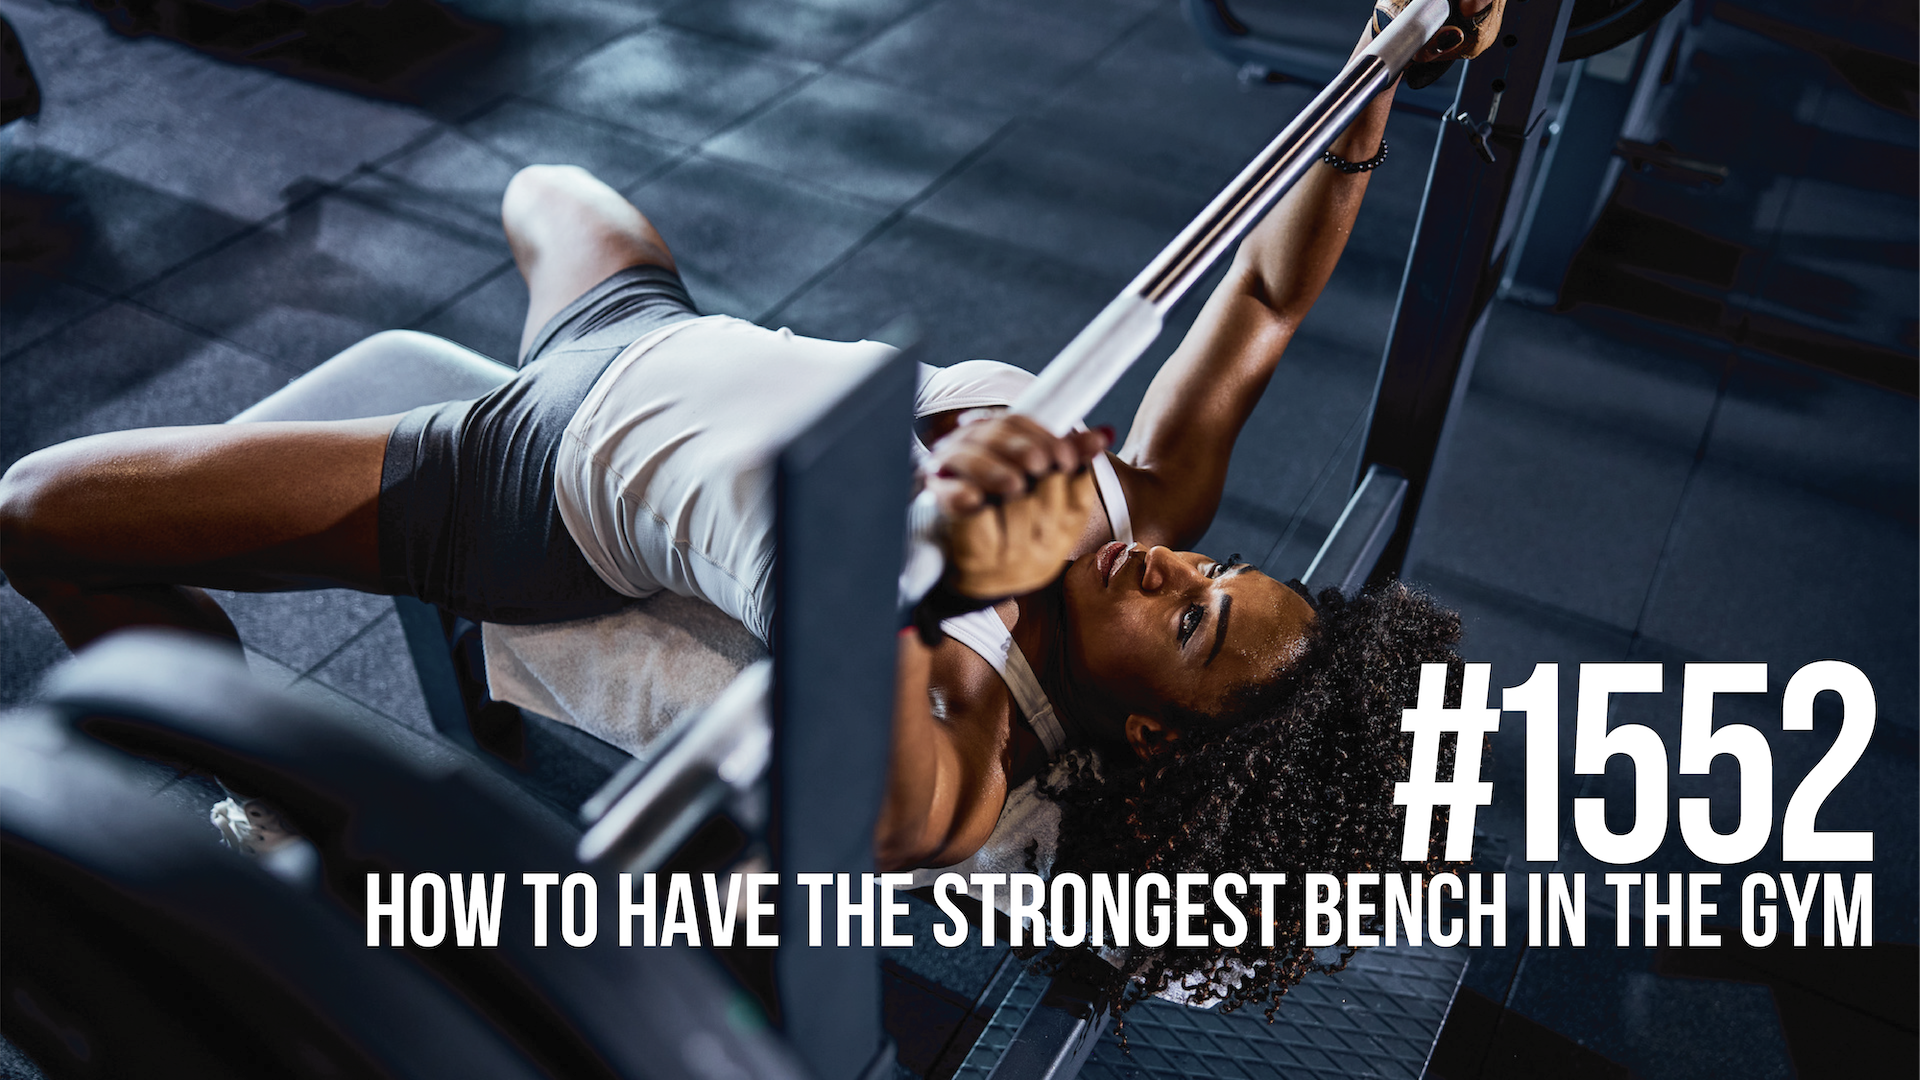 1552: How to Have the Strongest Bench in the Gym